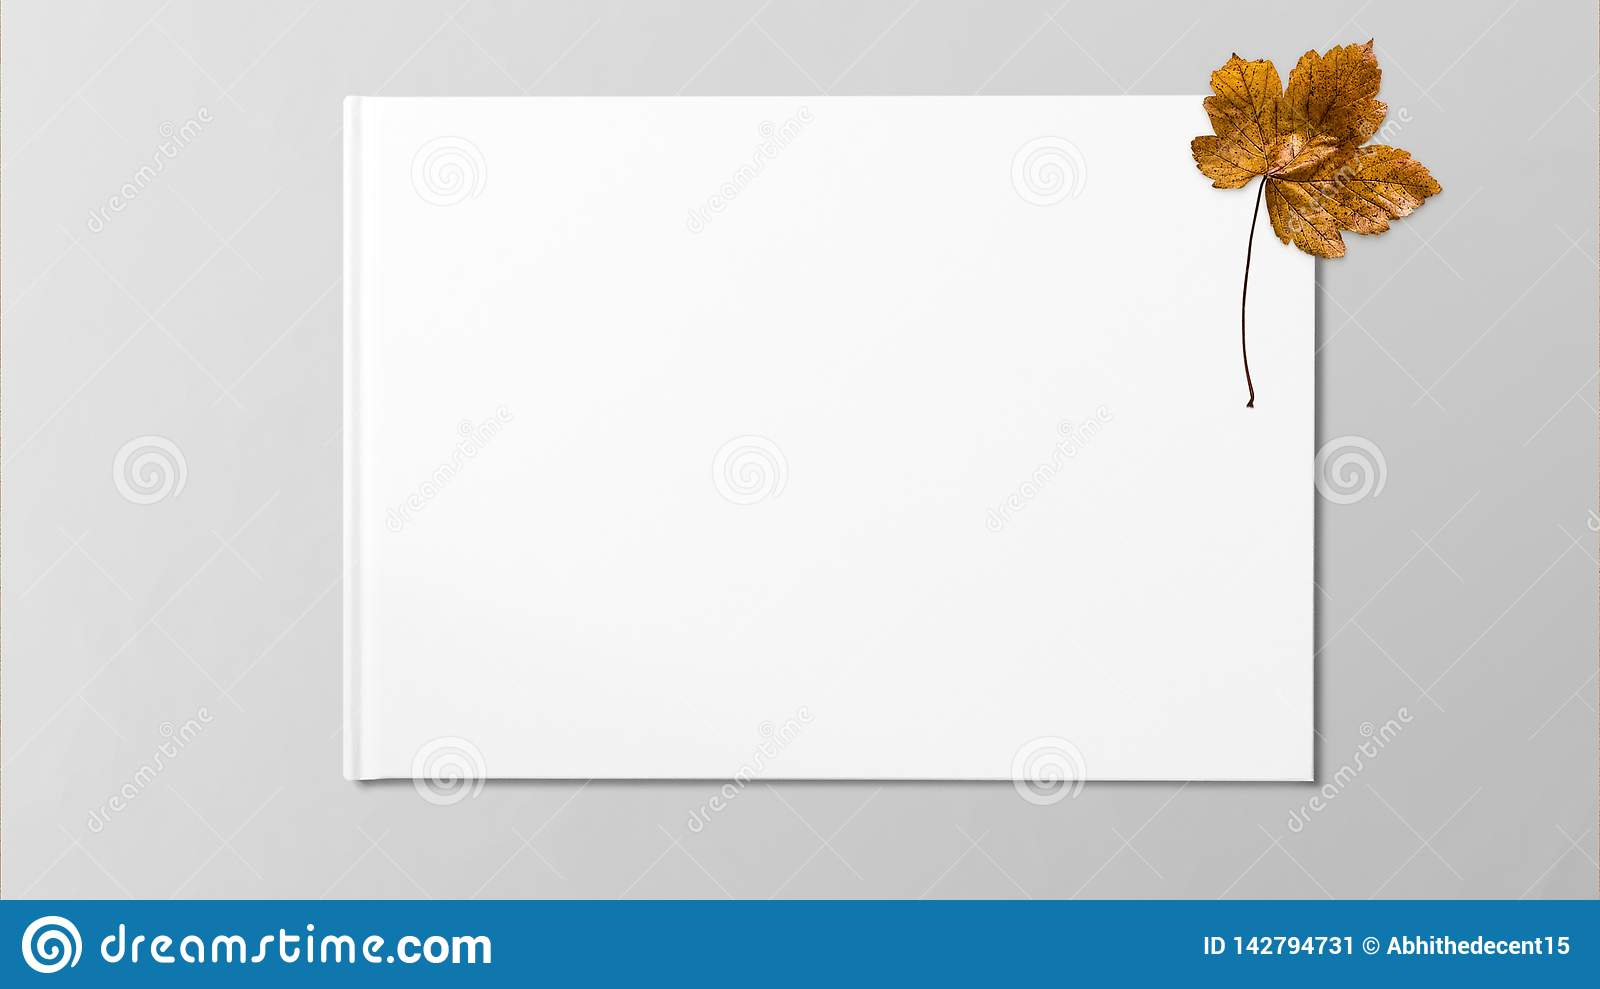 Yellow dried maple leaf on white background.